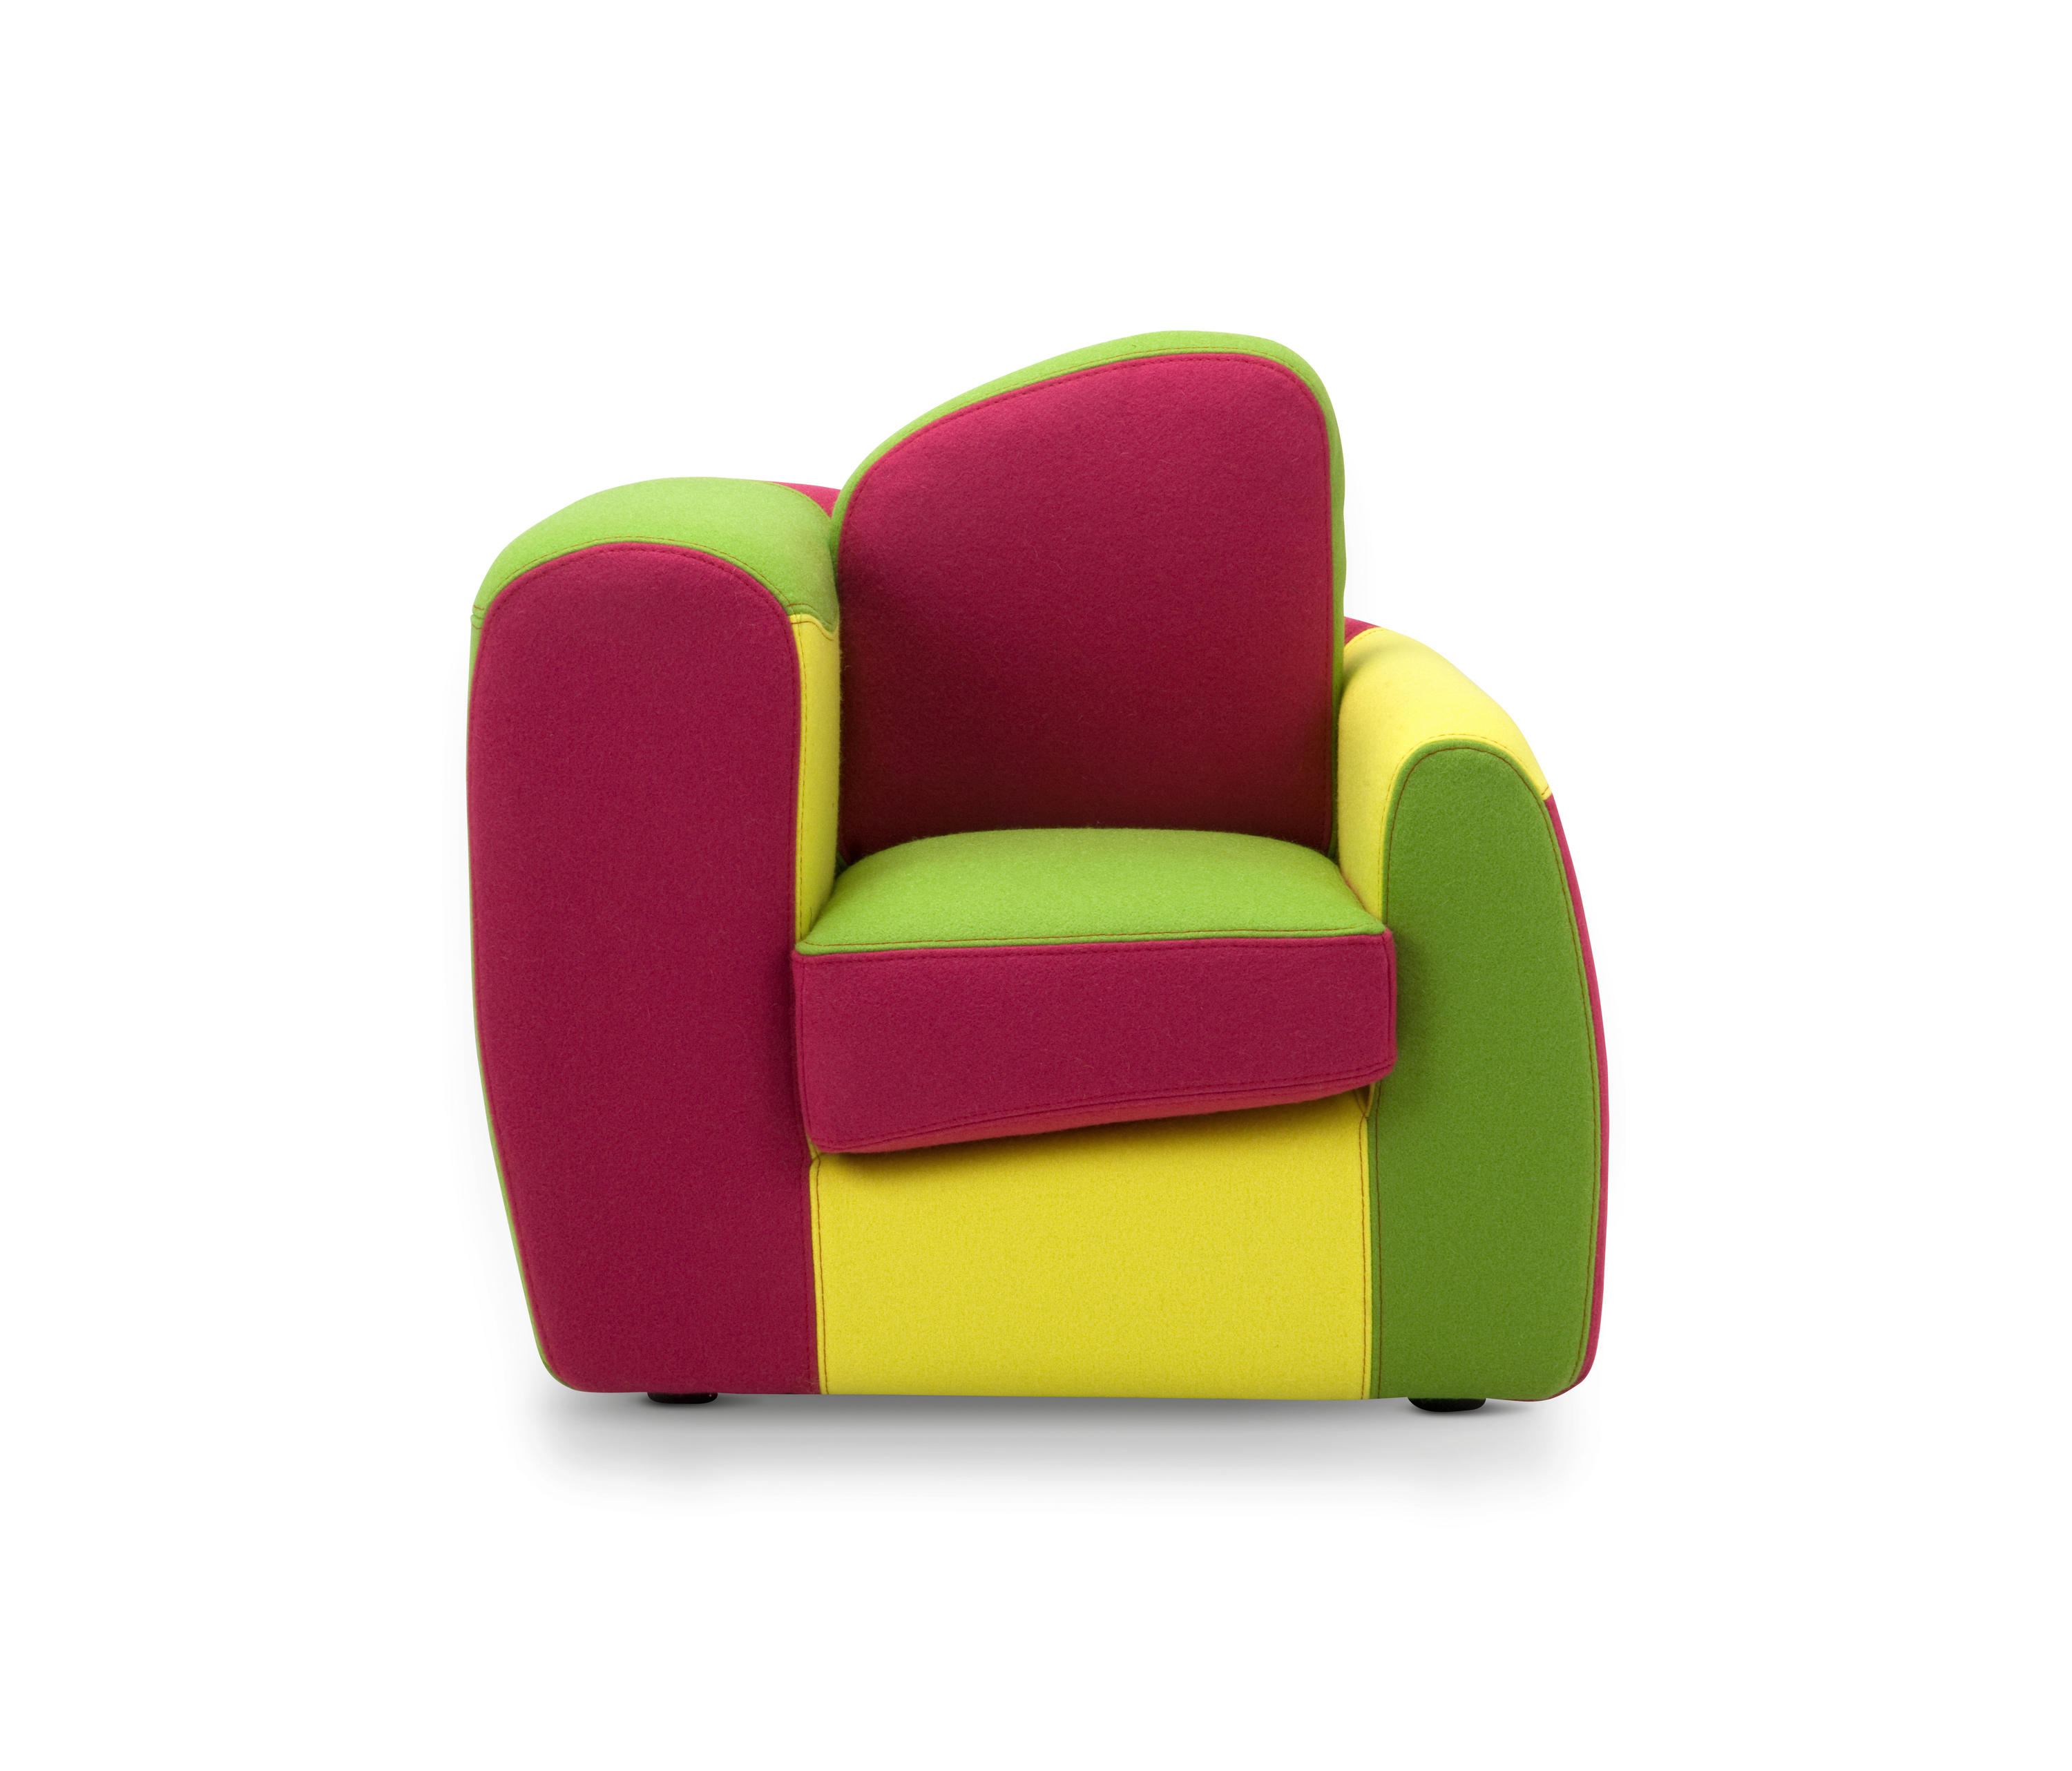 Symbol Baby Kids Armchairs Sofas From Adrenalina Architonic - Baby-collection-by-adrenalina